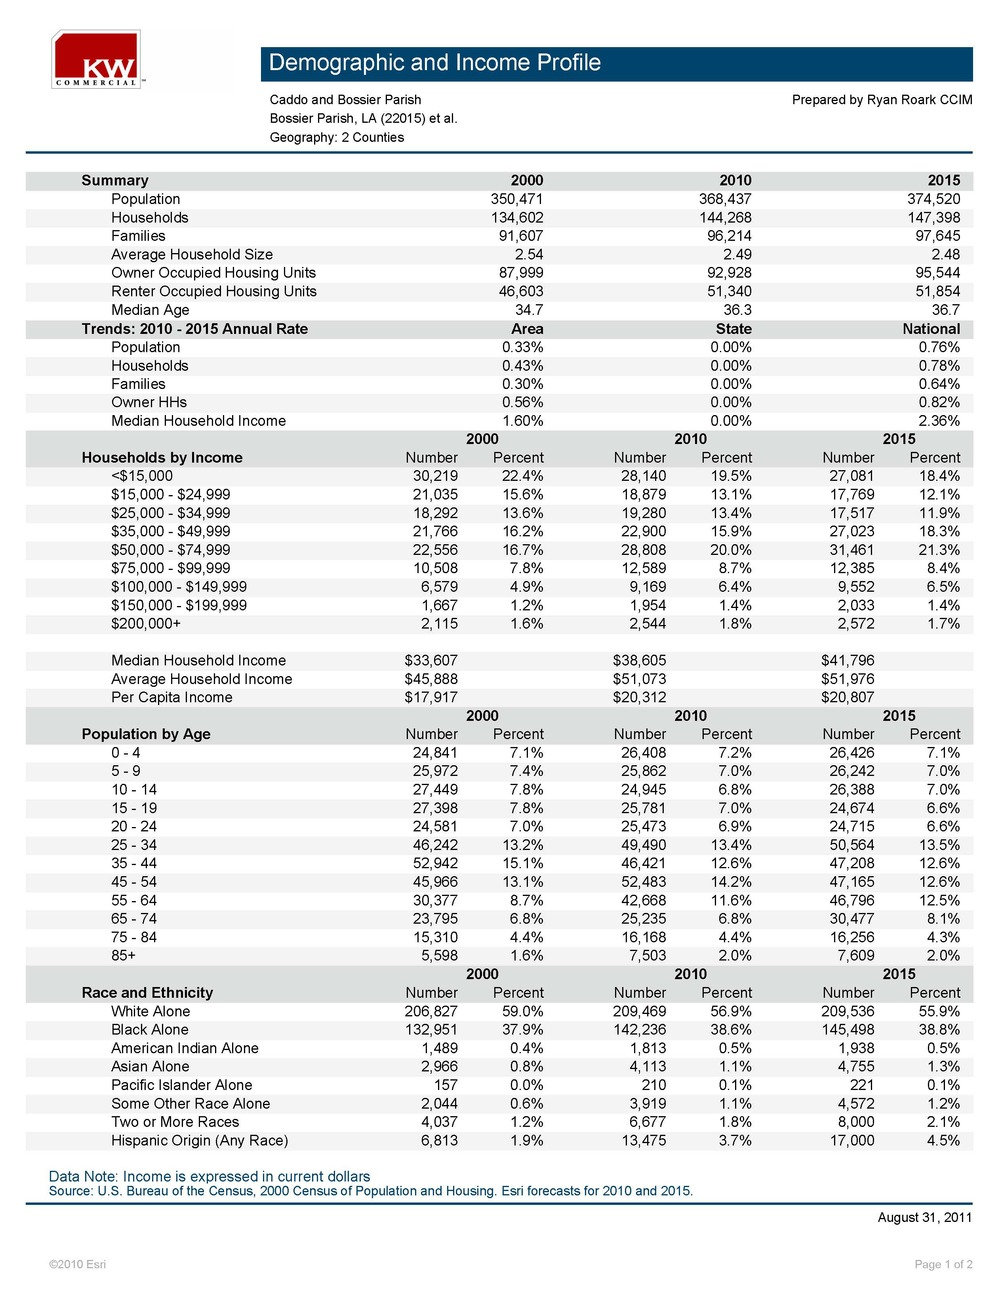 Demographics - Caddo & Bossier Parishes_Page_1.jpg